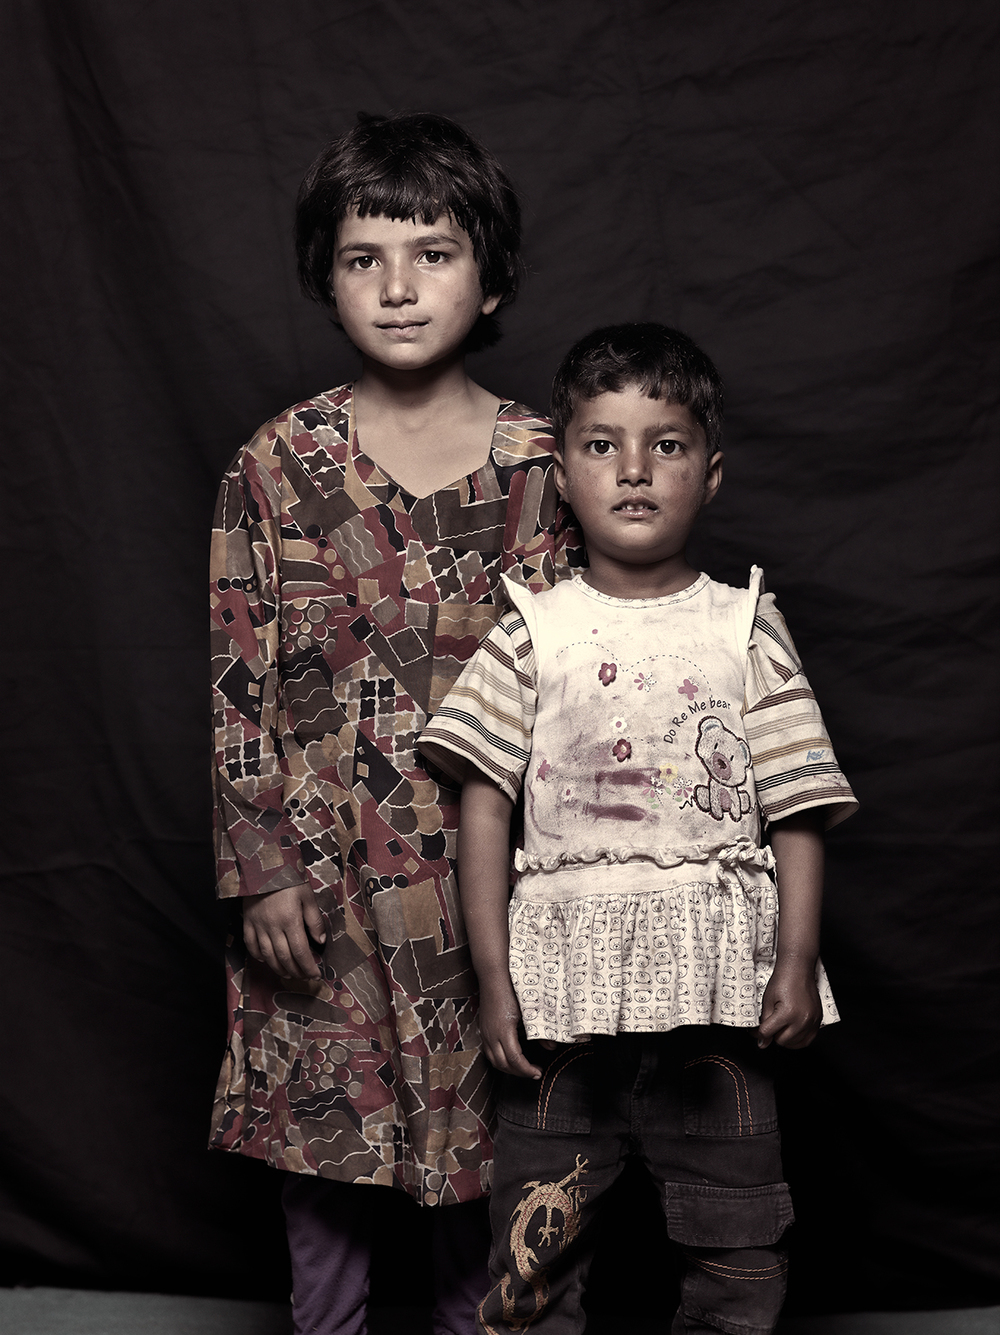 Mushkan Shah, 5 and Shamina Shah, 4, D-camp, 2013